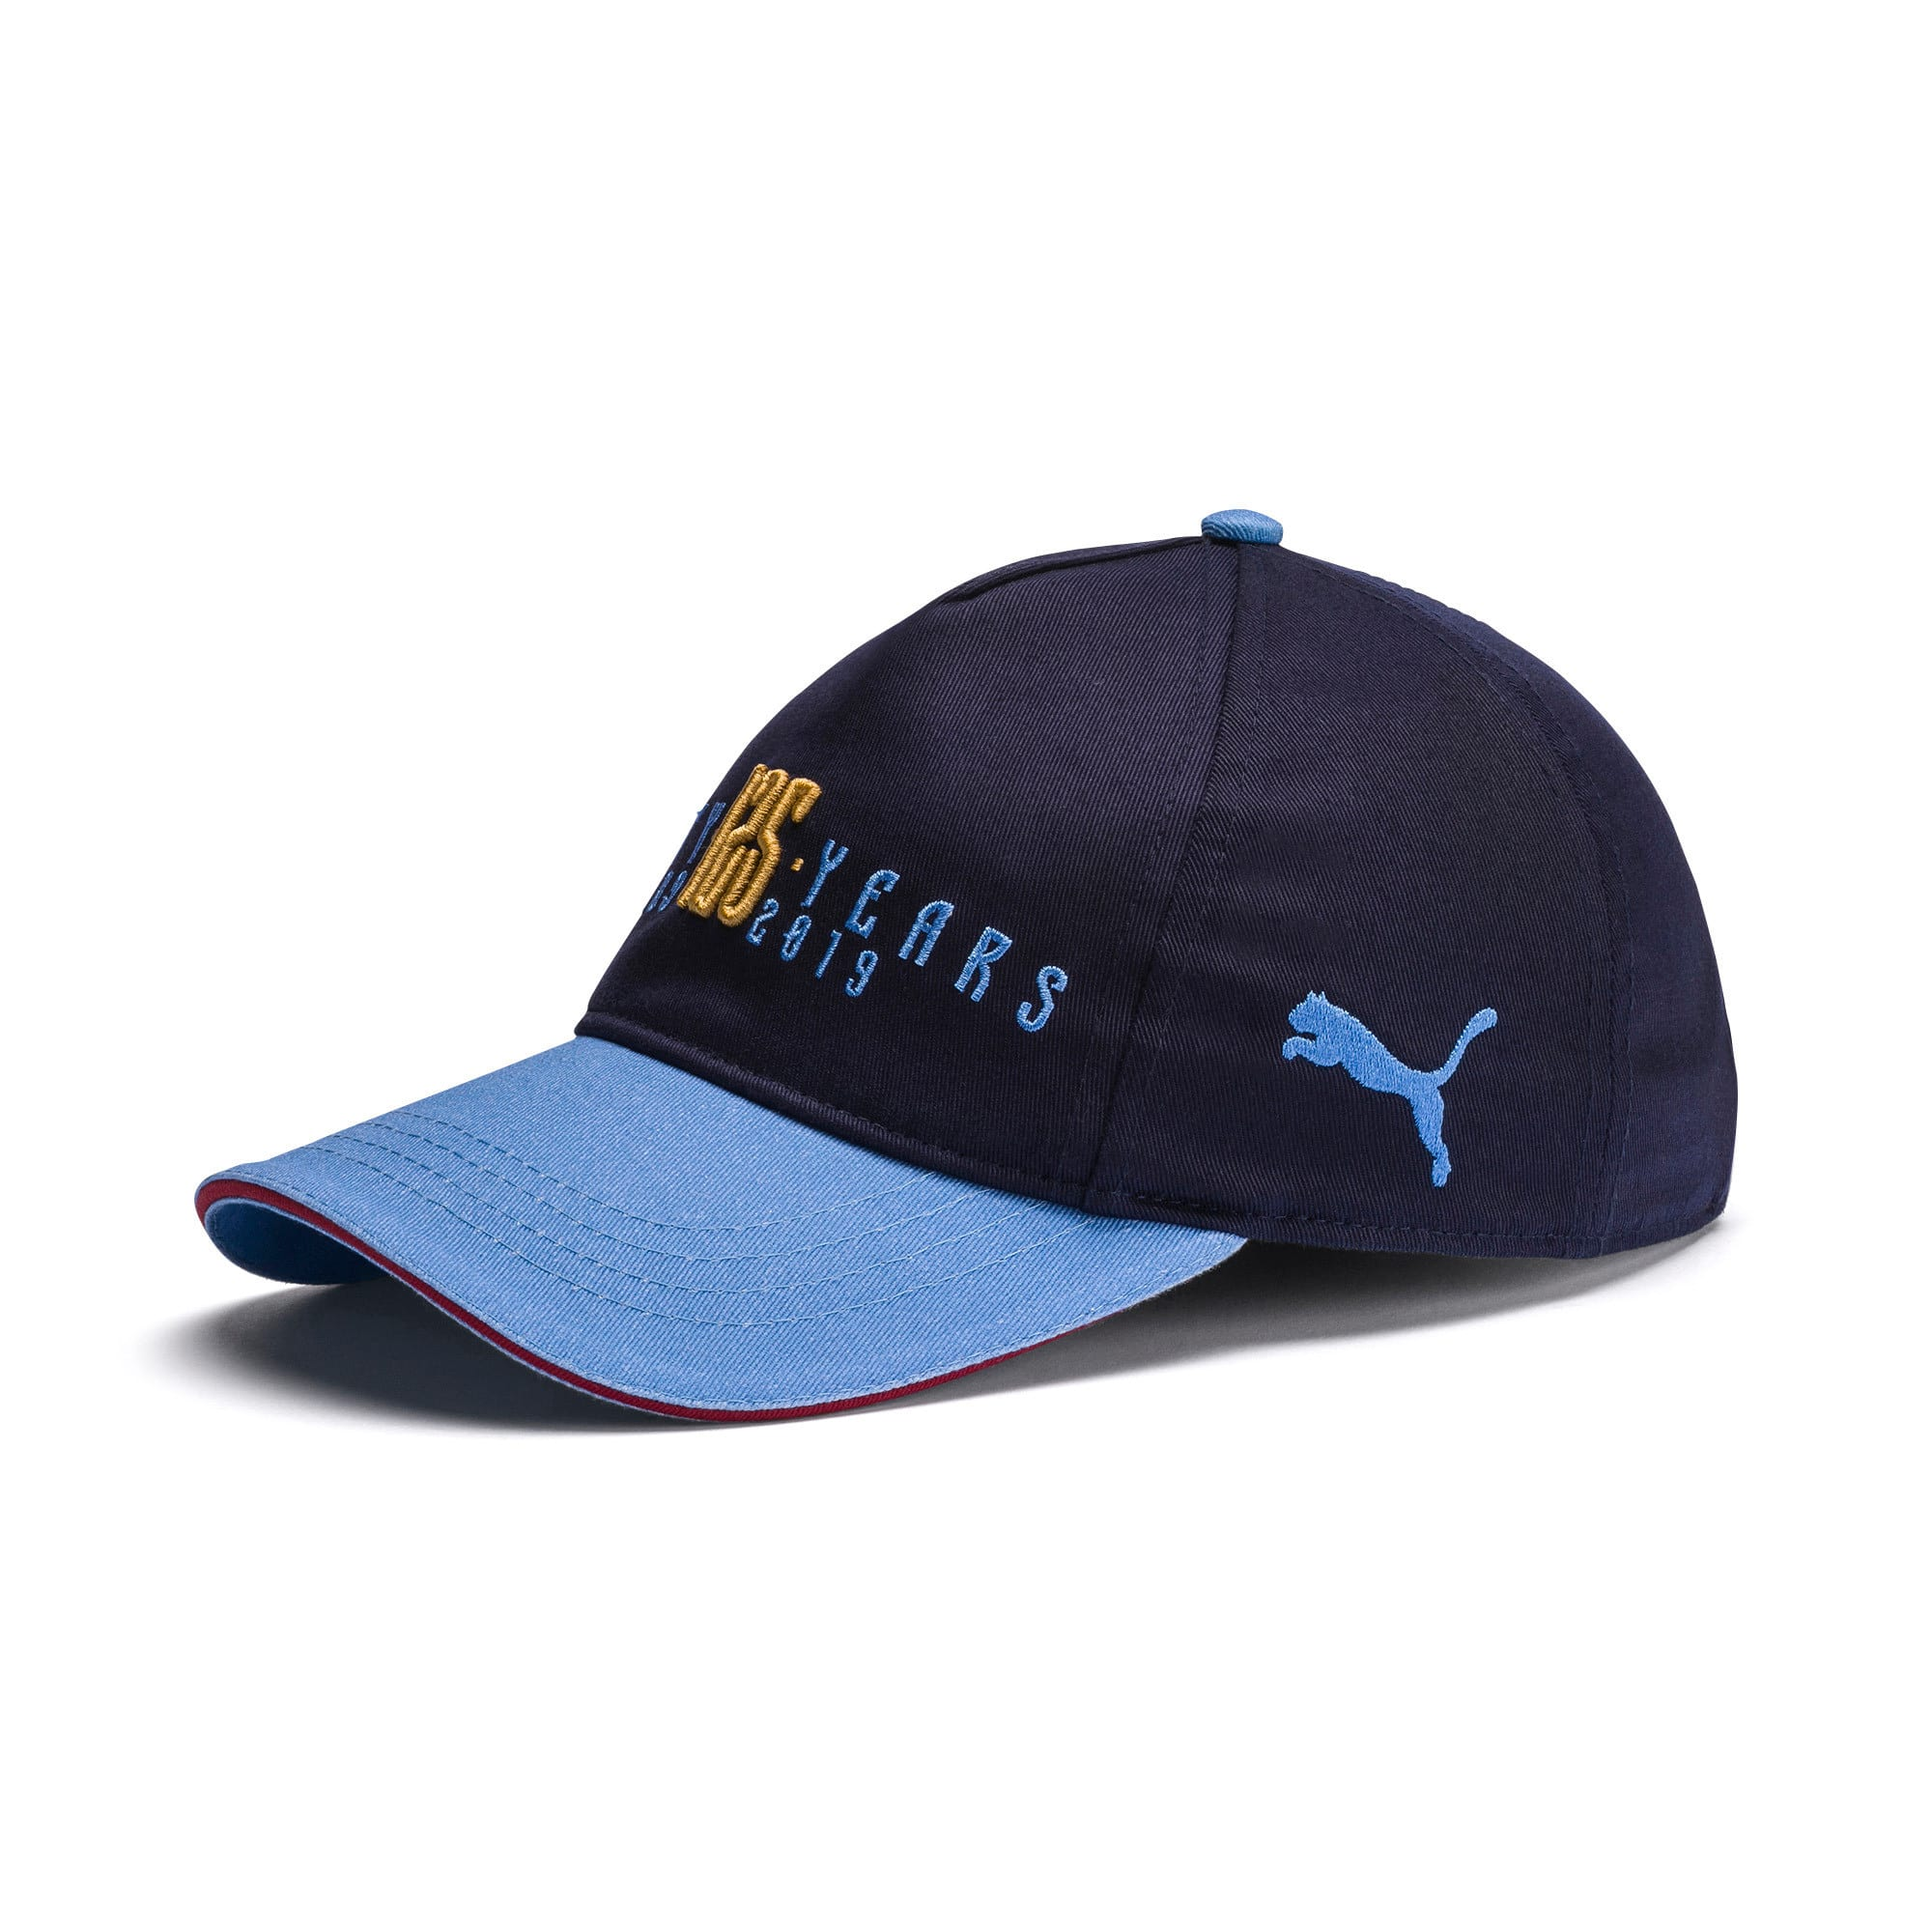 Thumbnail 1 of Manchester City 125 Year Anniversary Cap, Peacoat-Team Light Blue, medium